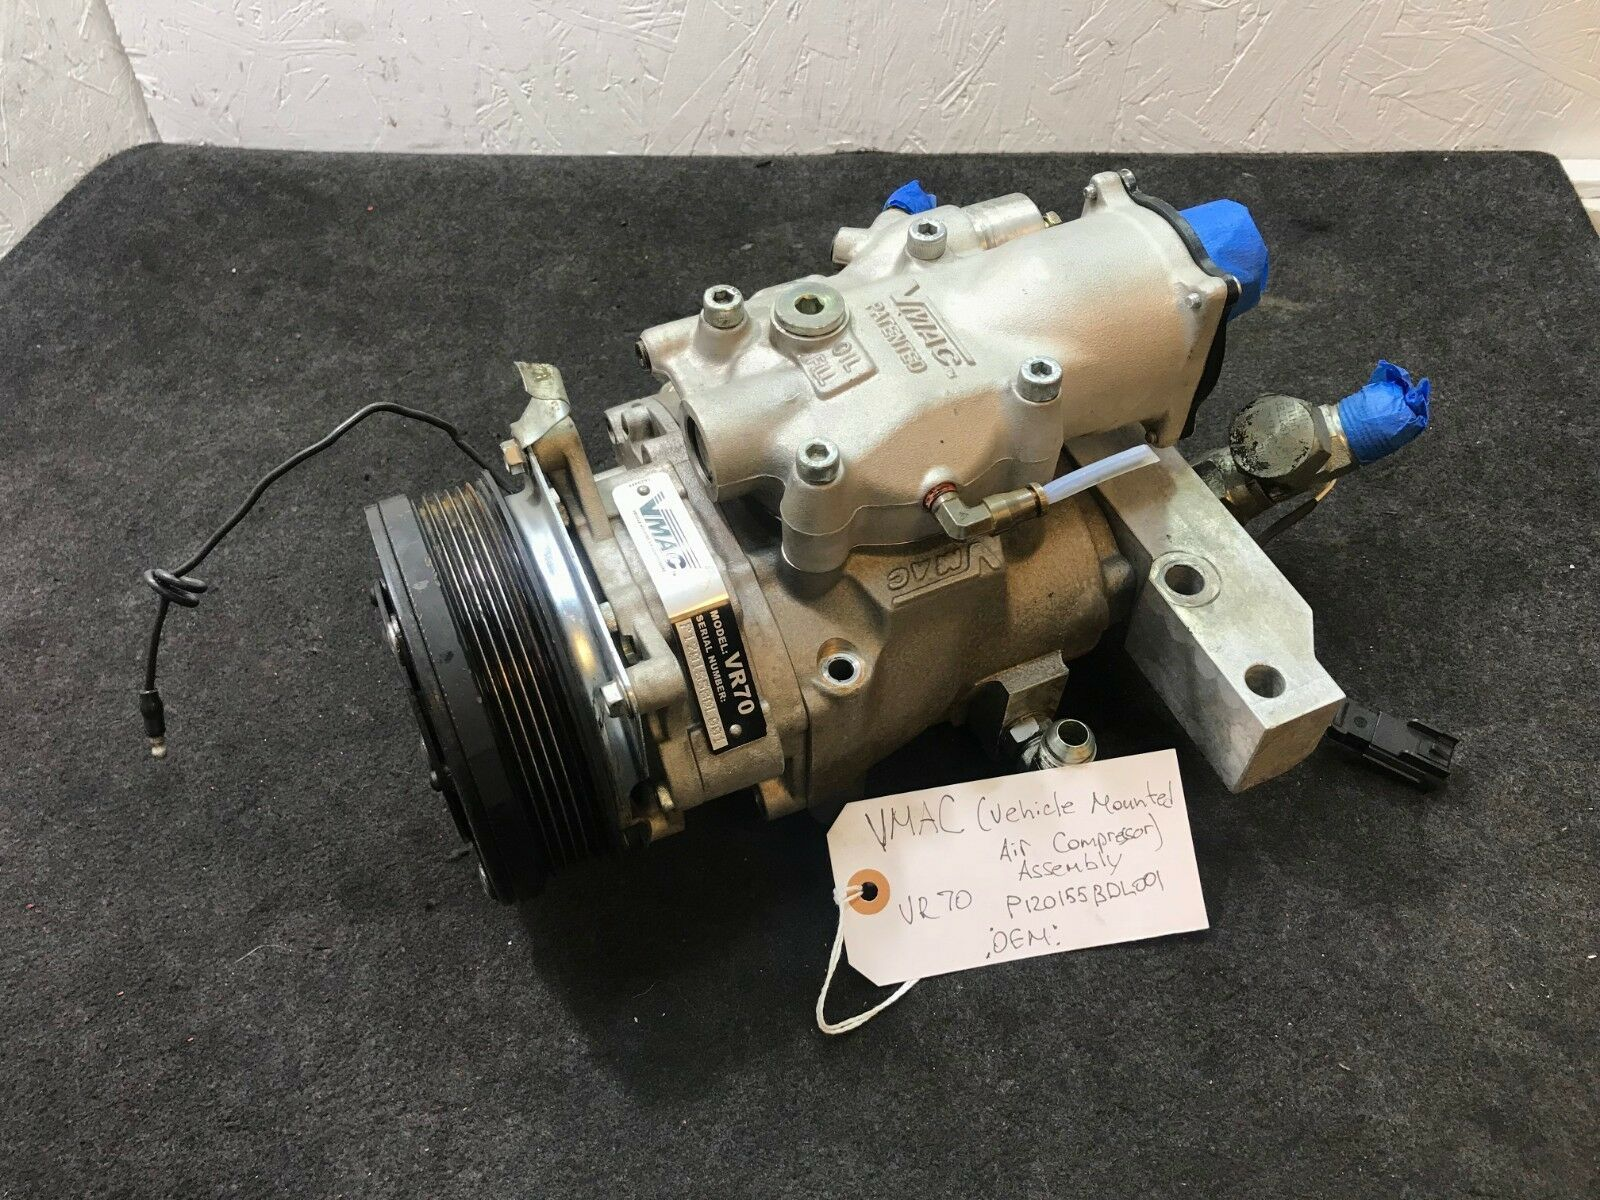 VMAC (Vehicle Mounted Air Compressor) - VR70 Complete Assembly 120155BDL001